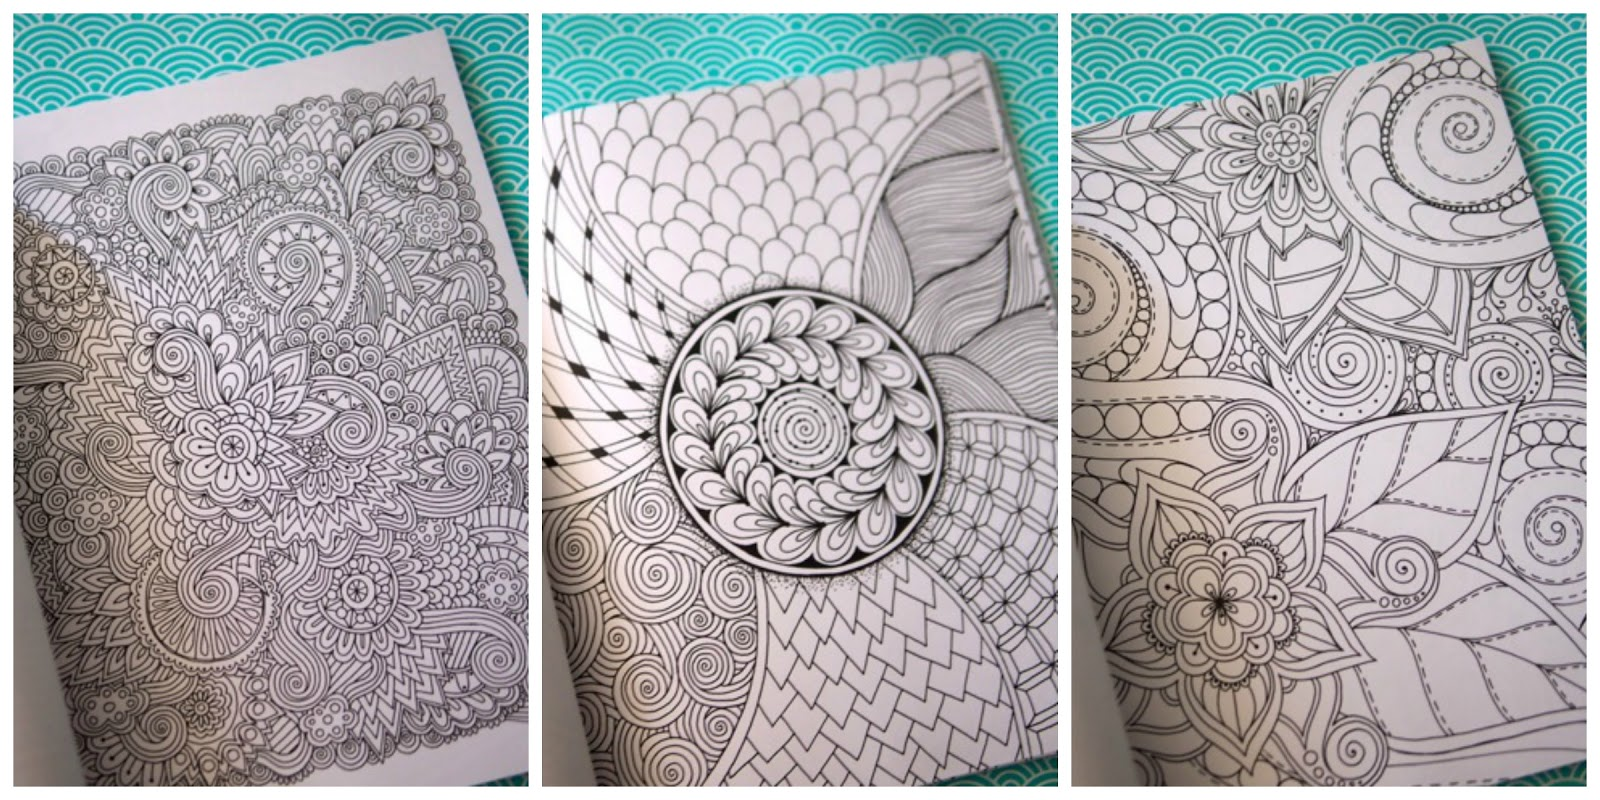 Fully Booked Has A Lot Of Adult Coloring Books That Will Suit Various Personalities Check These Out And See Which One Fits Yours